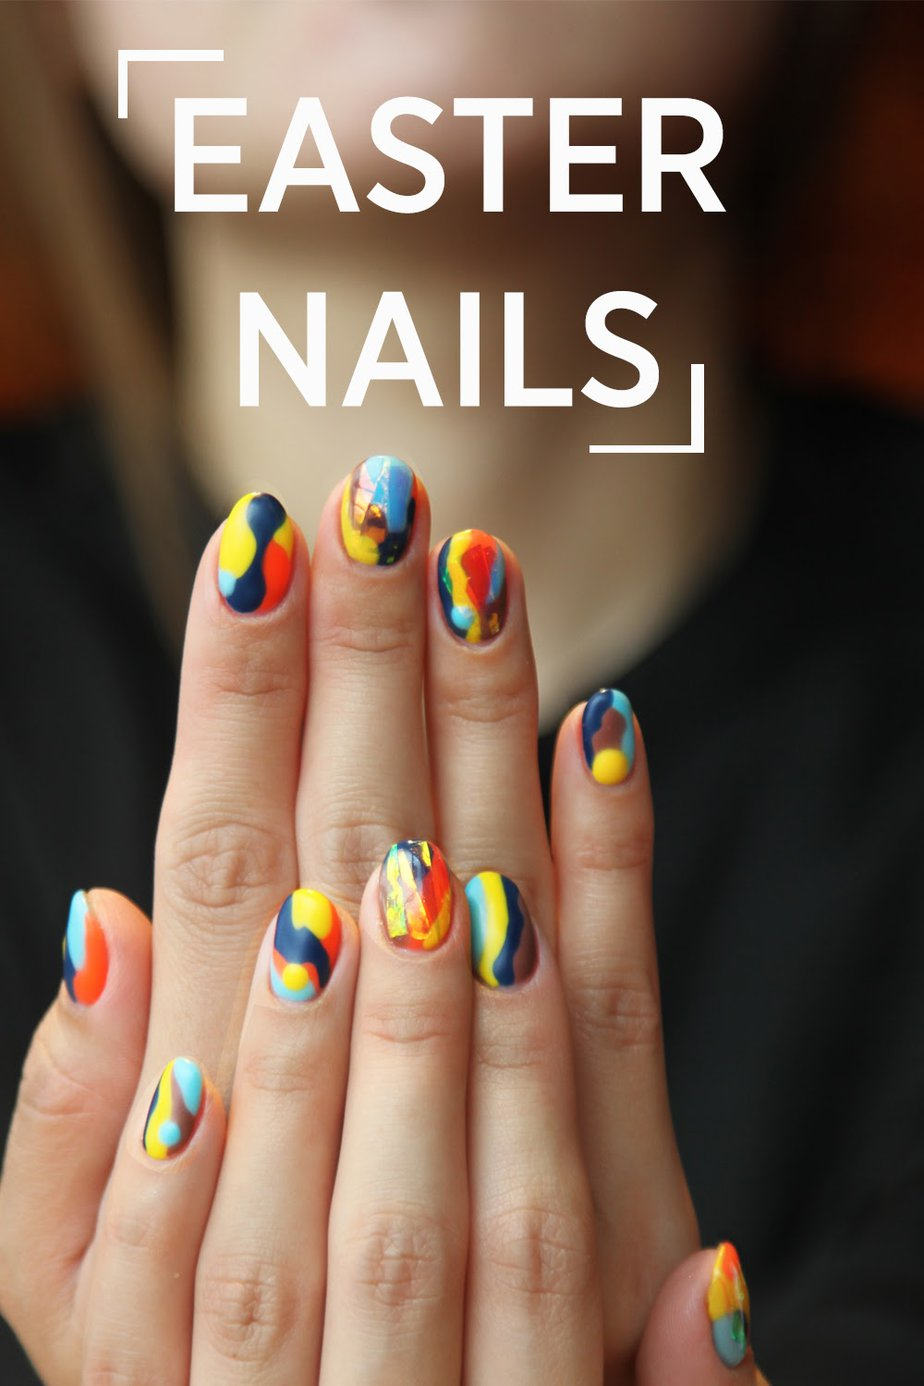 The best Easter nails can be designed to fit your personality, Easter outfit, or just help you get in the spirit of the holiday. Even better, most are easy nail designs. Easter Nail Ideas | Easter Nail Designs | Best Easter Nail Design Ideas | Easy Easter Nail Design Ideas | Fun Easter Nail Design Ideas via @thebestoflife